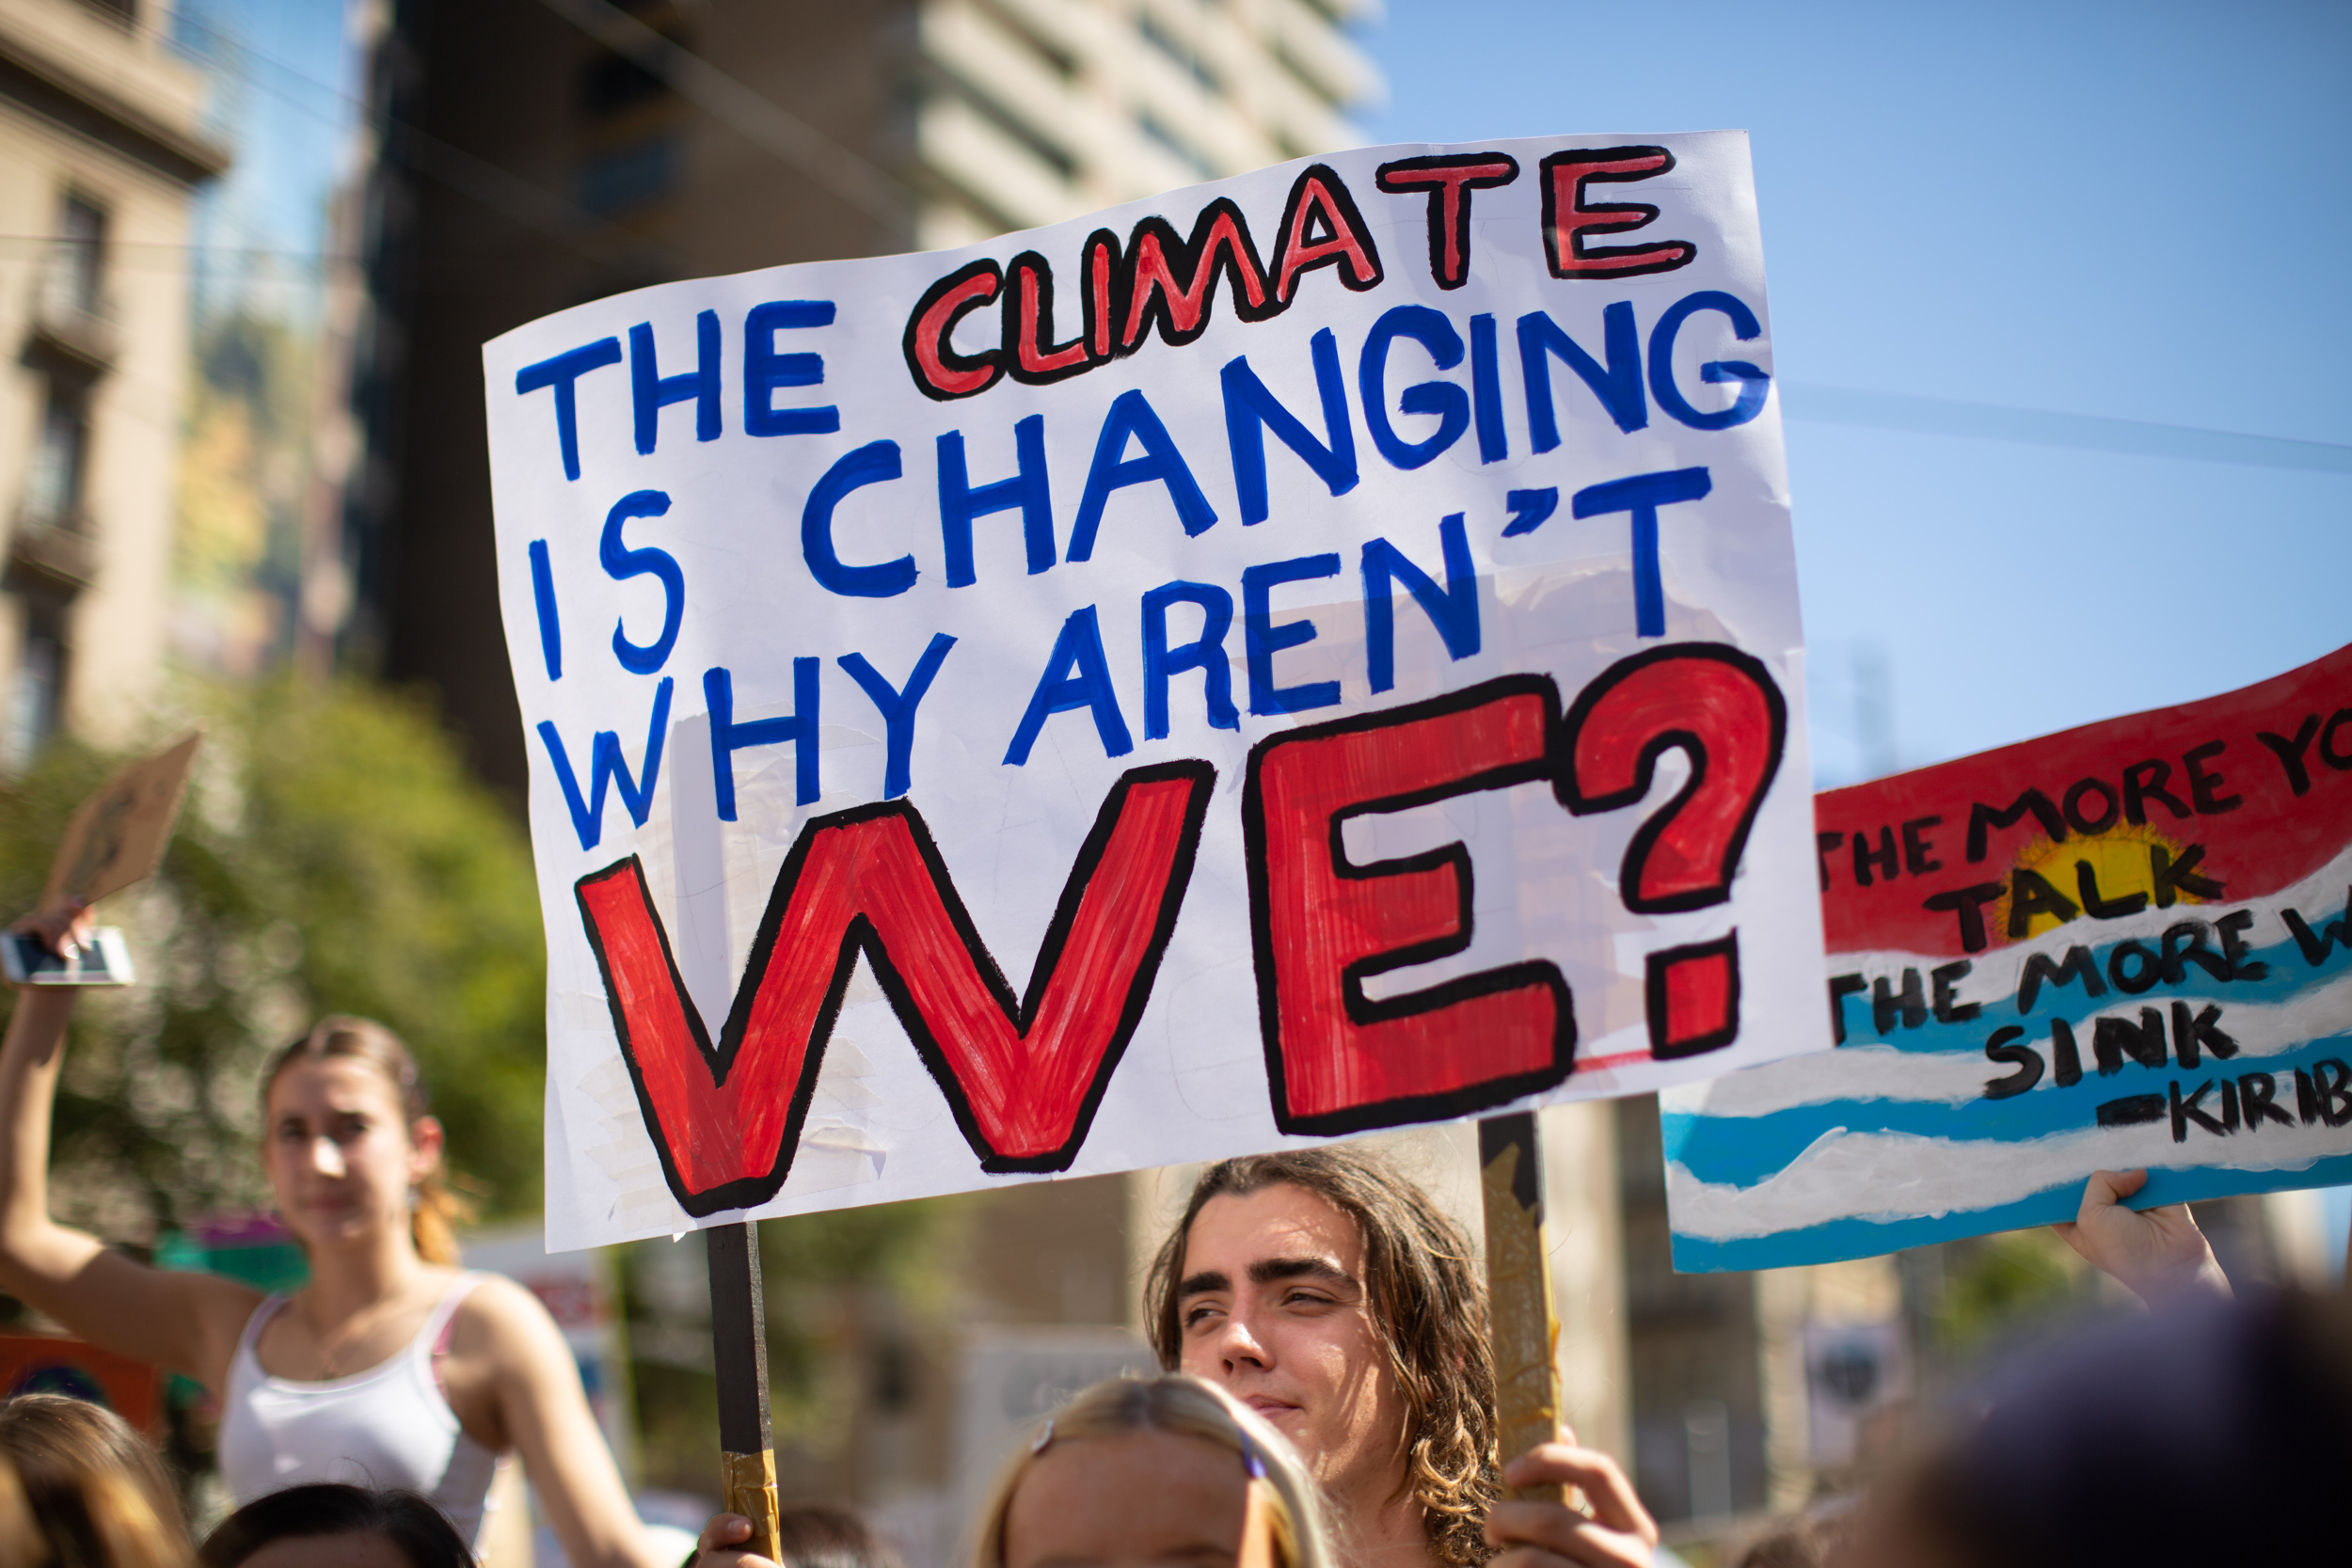 Statement of Solidarity with the School Strike 4 Climate